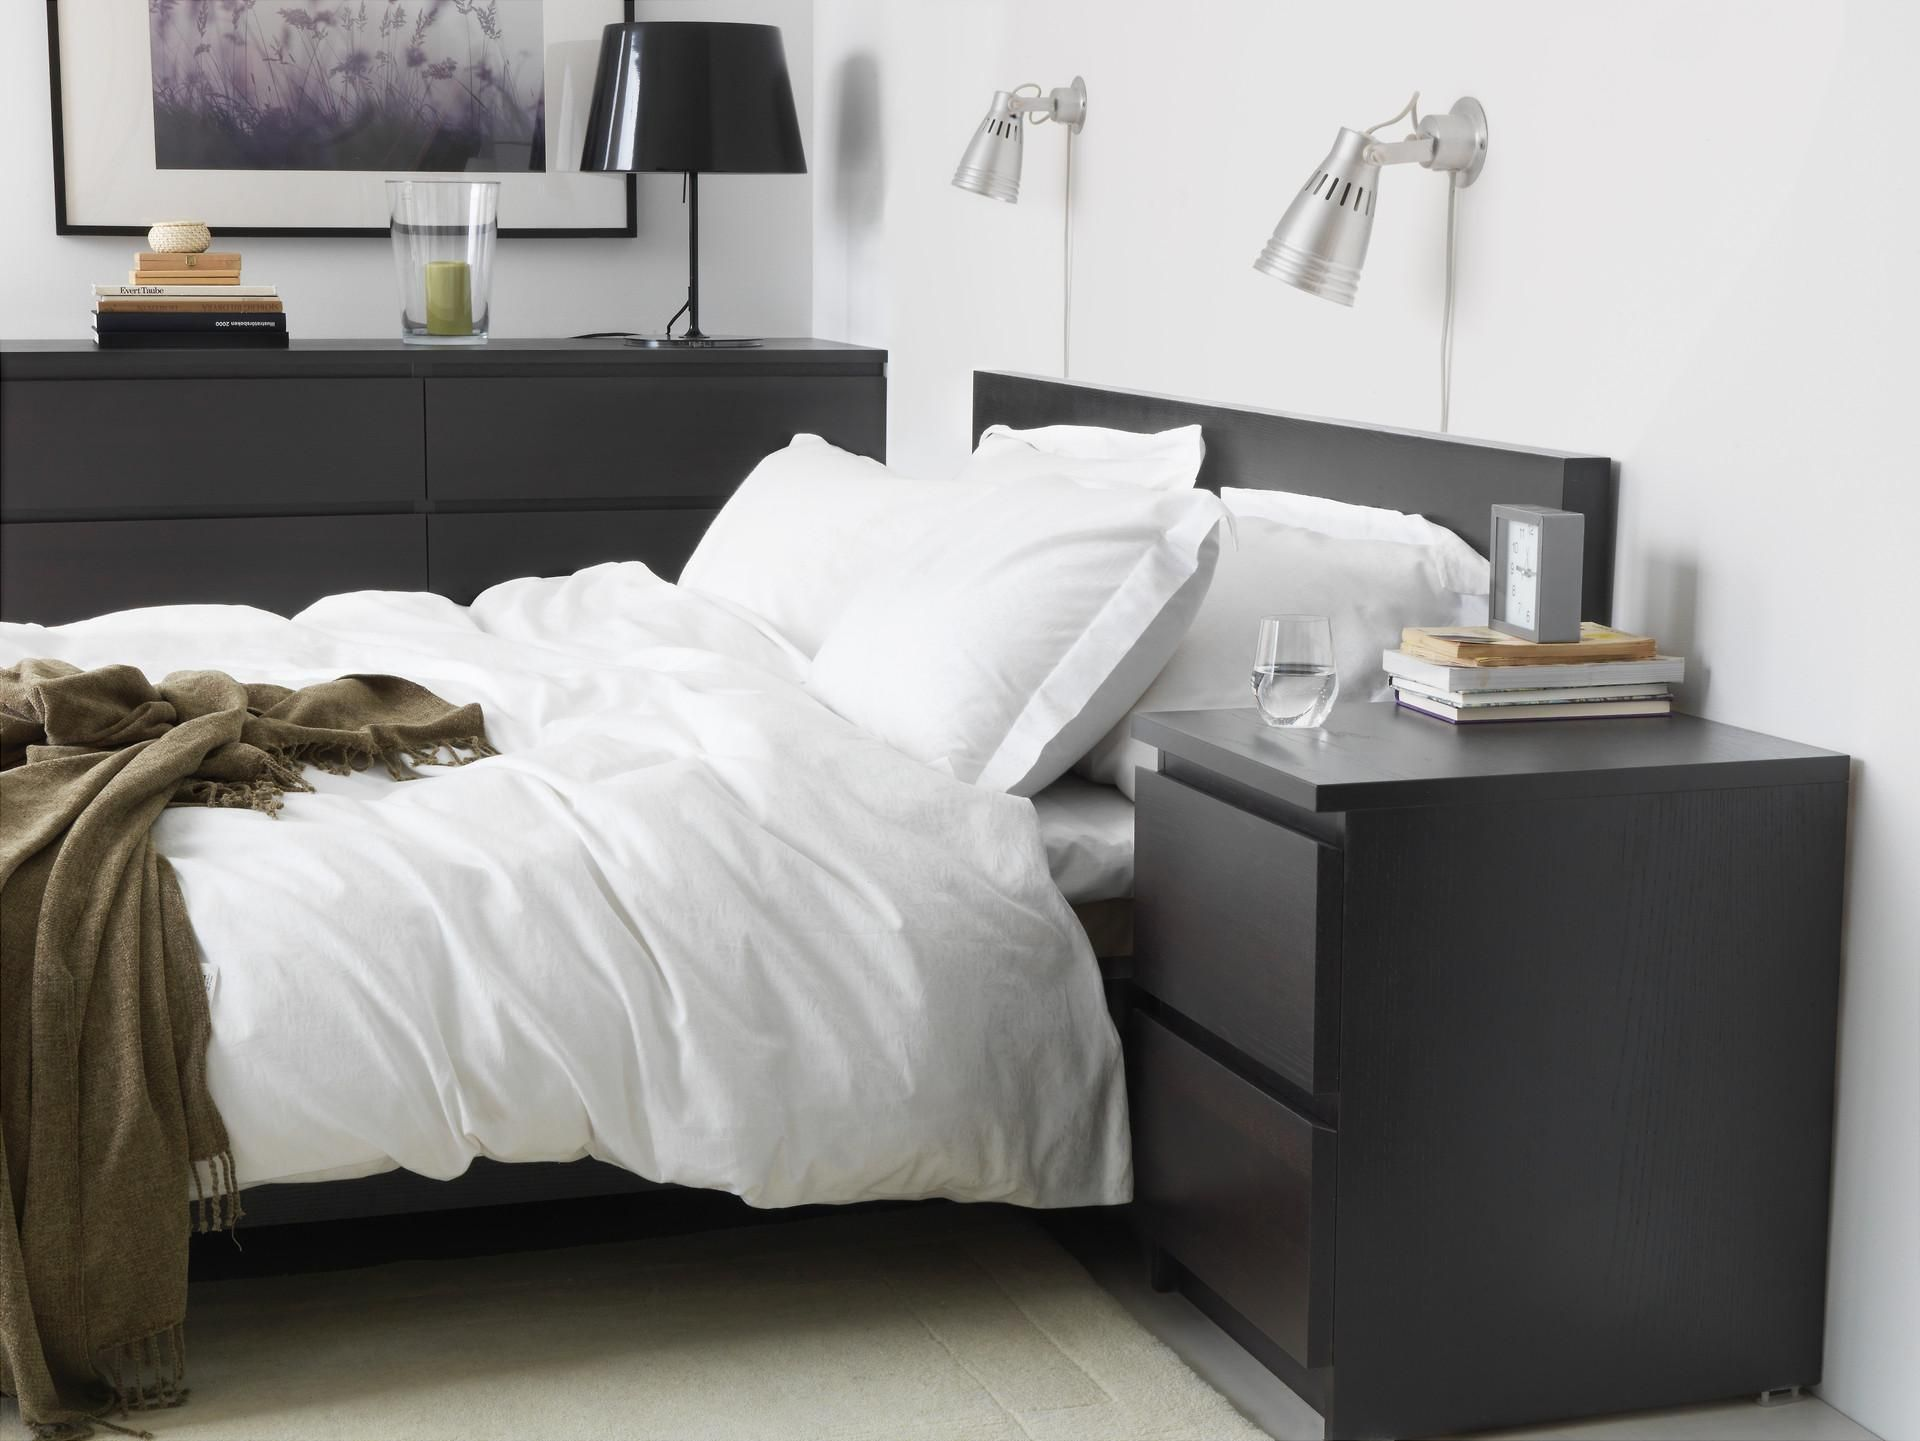 Ikea Schlafzimmer Malm Malm 2-drawer Chest, Black-brown | Ikea Malm, Malm And